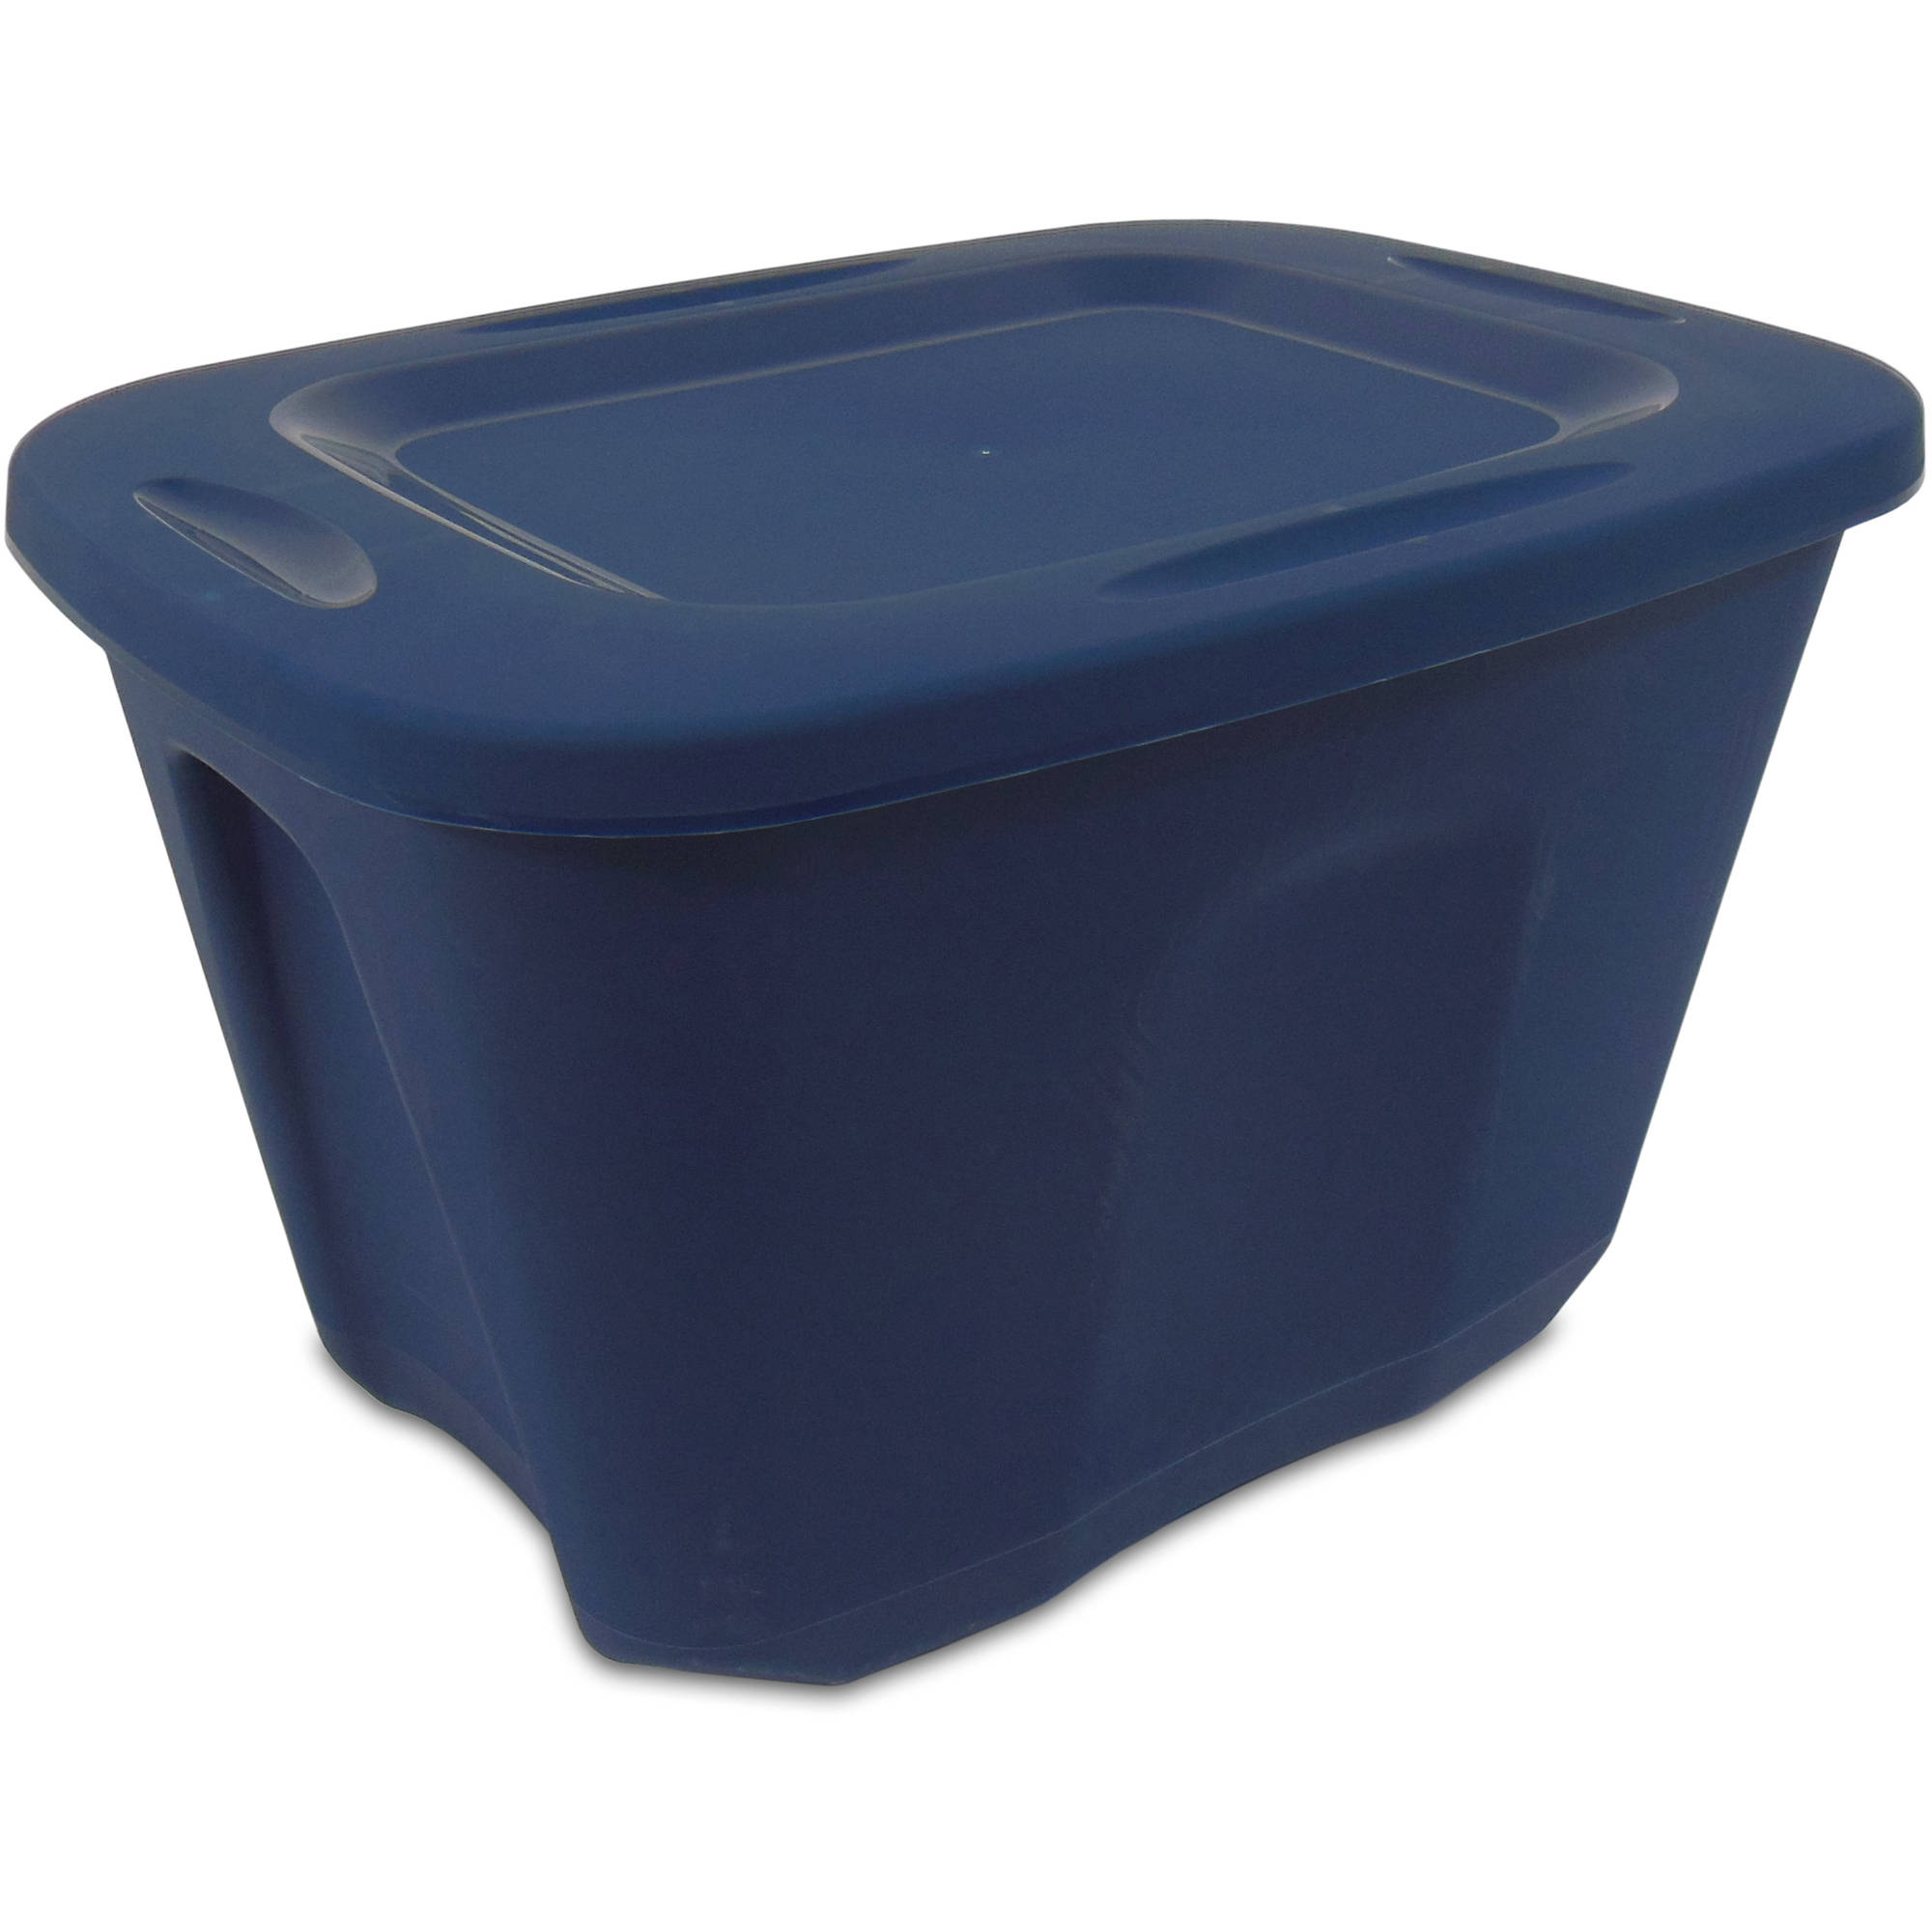 Homz 10-Gallon Storage Tote Set, Blue